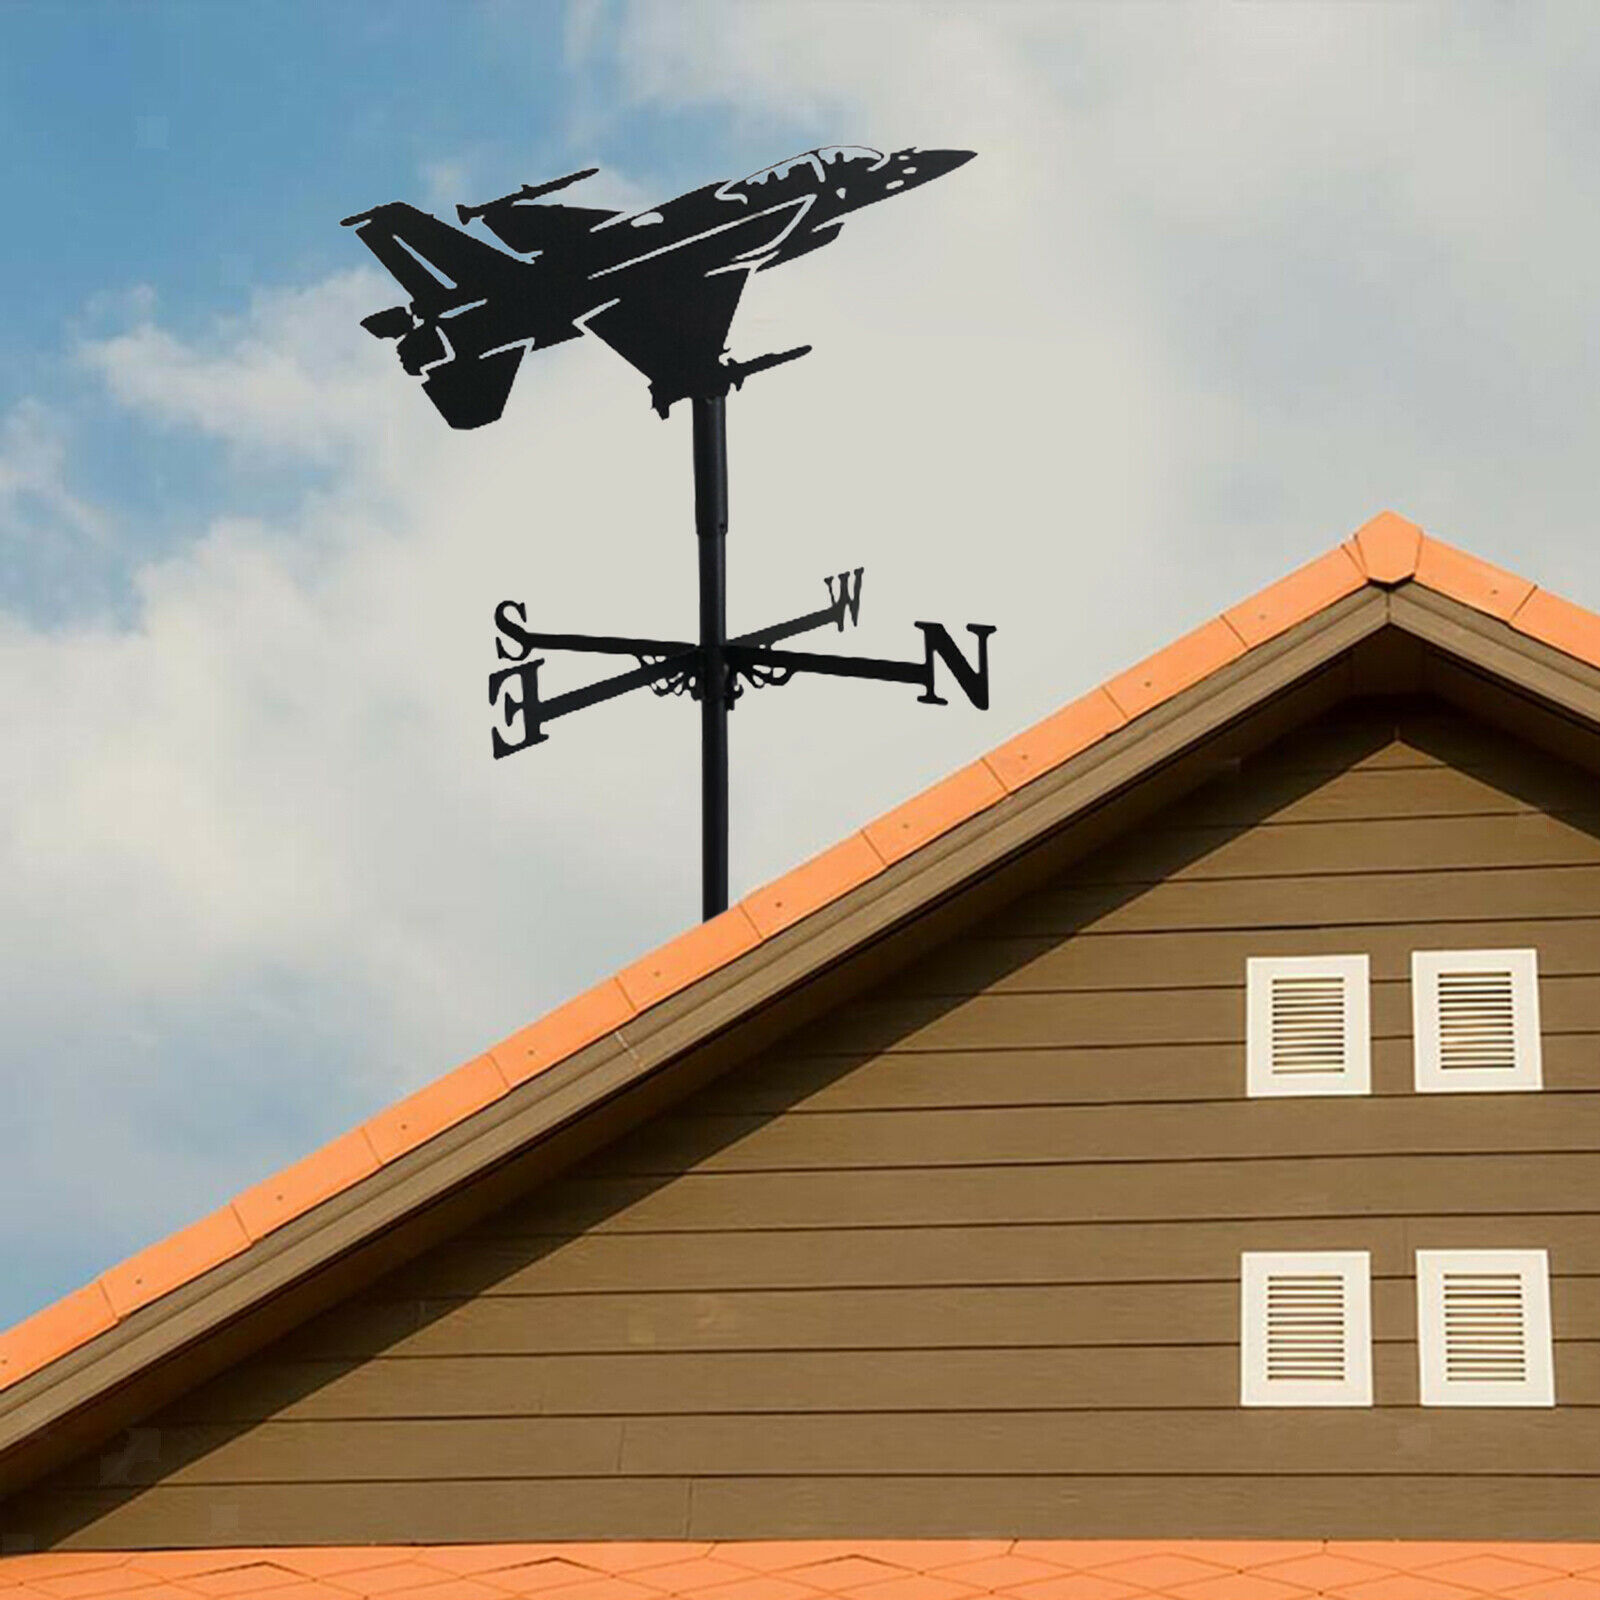 Retro Stainless Weather Vane with Aircraft Silhouette Wind Indicator Garden